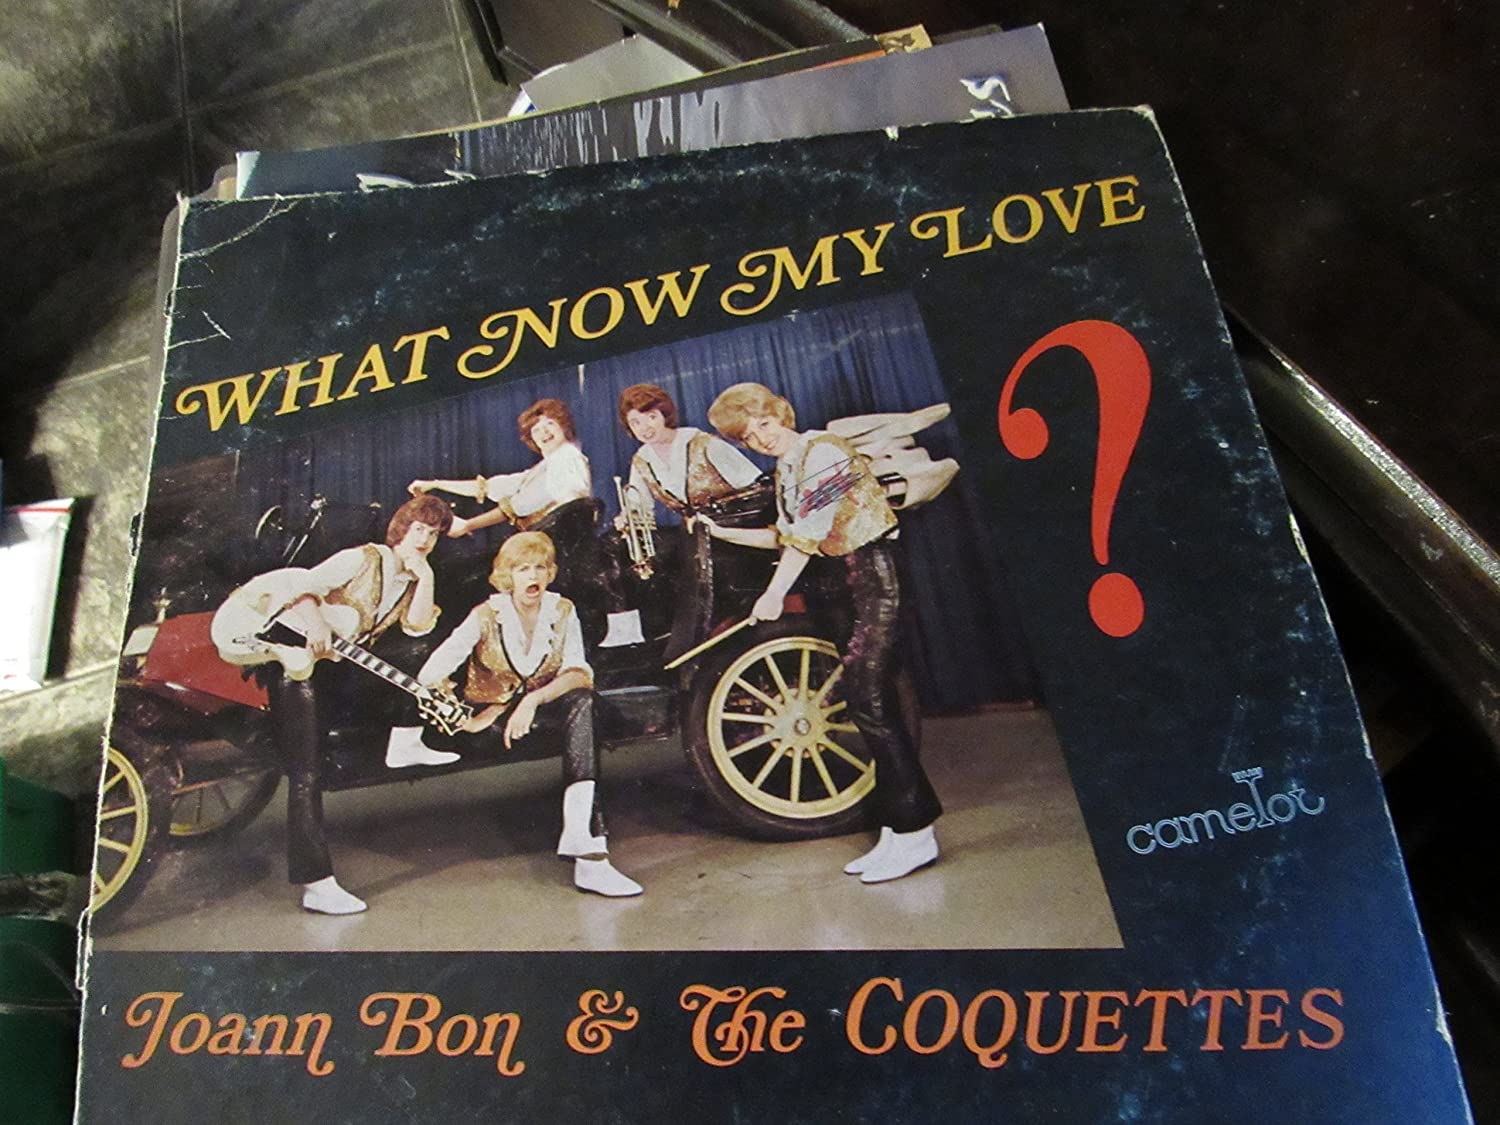 Joann Bon and the Coquettes - vinyl record What Now My Love